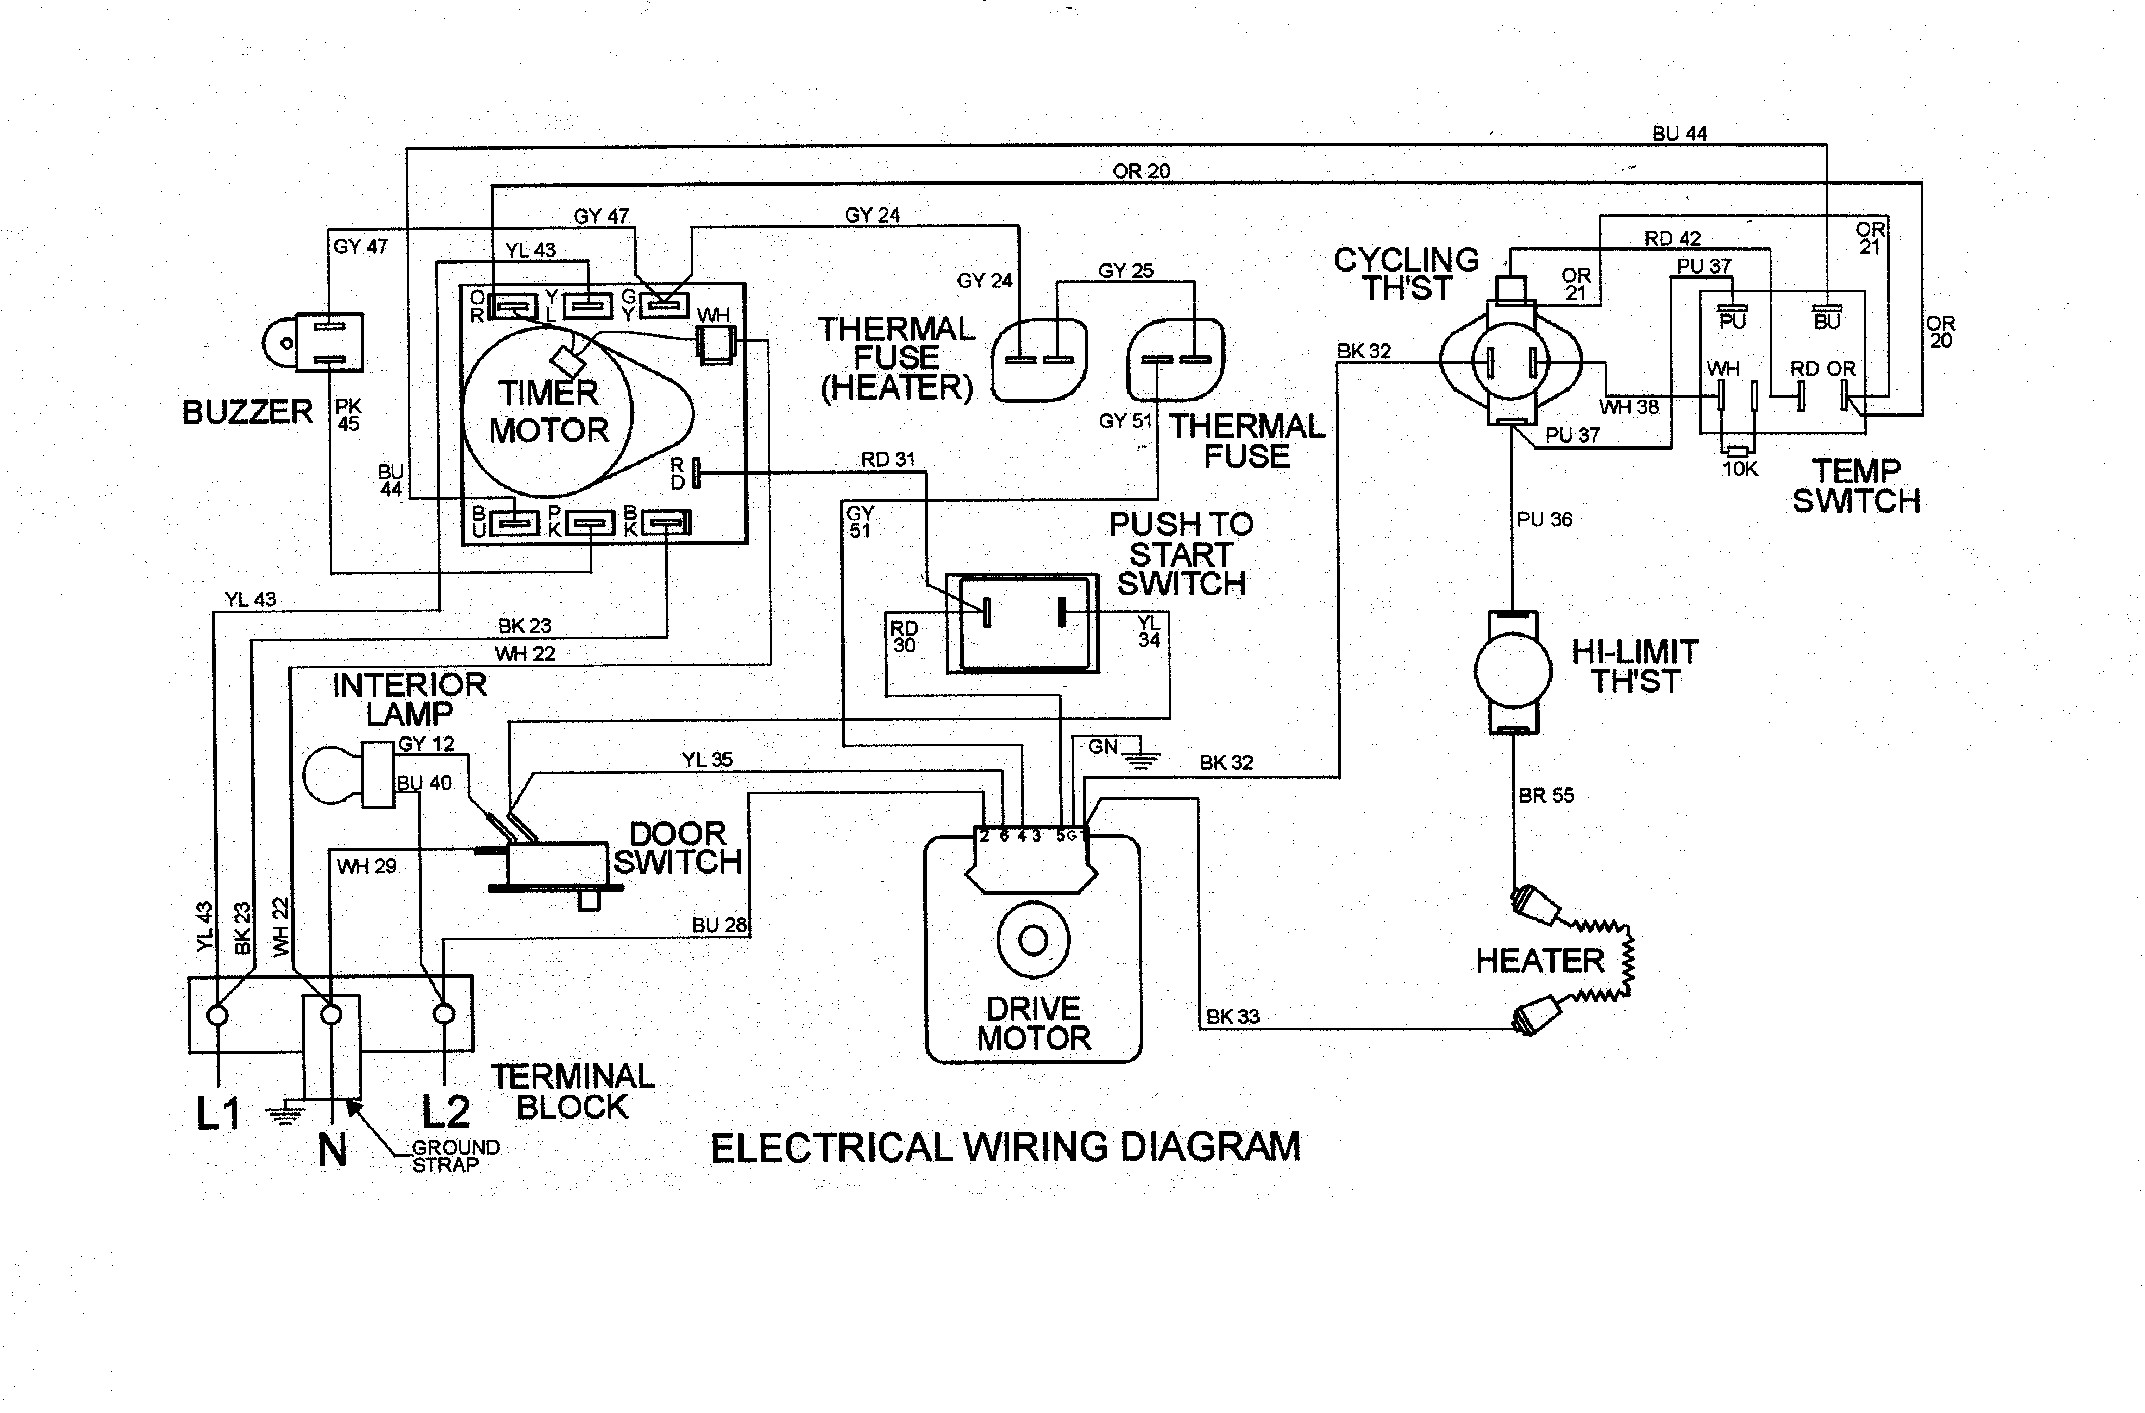 M0508013 00008 can i disable the buzzer on my maytag dryer md 14 md6200? maytag dryer wiring diagram at bayanpartner.co